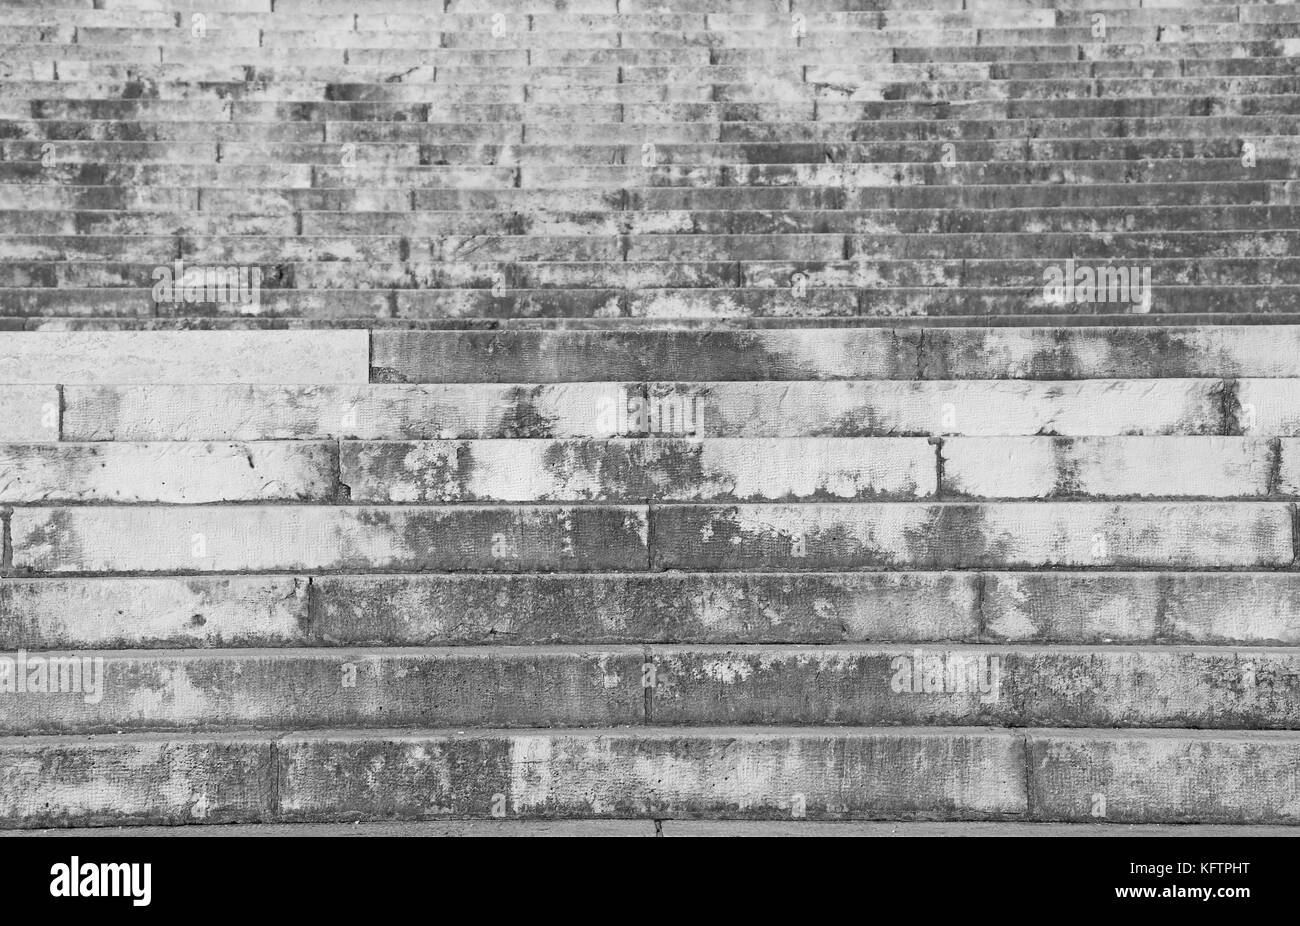 background of a gray stairway with the large steps towards the infinite - Stock Image